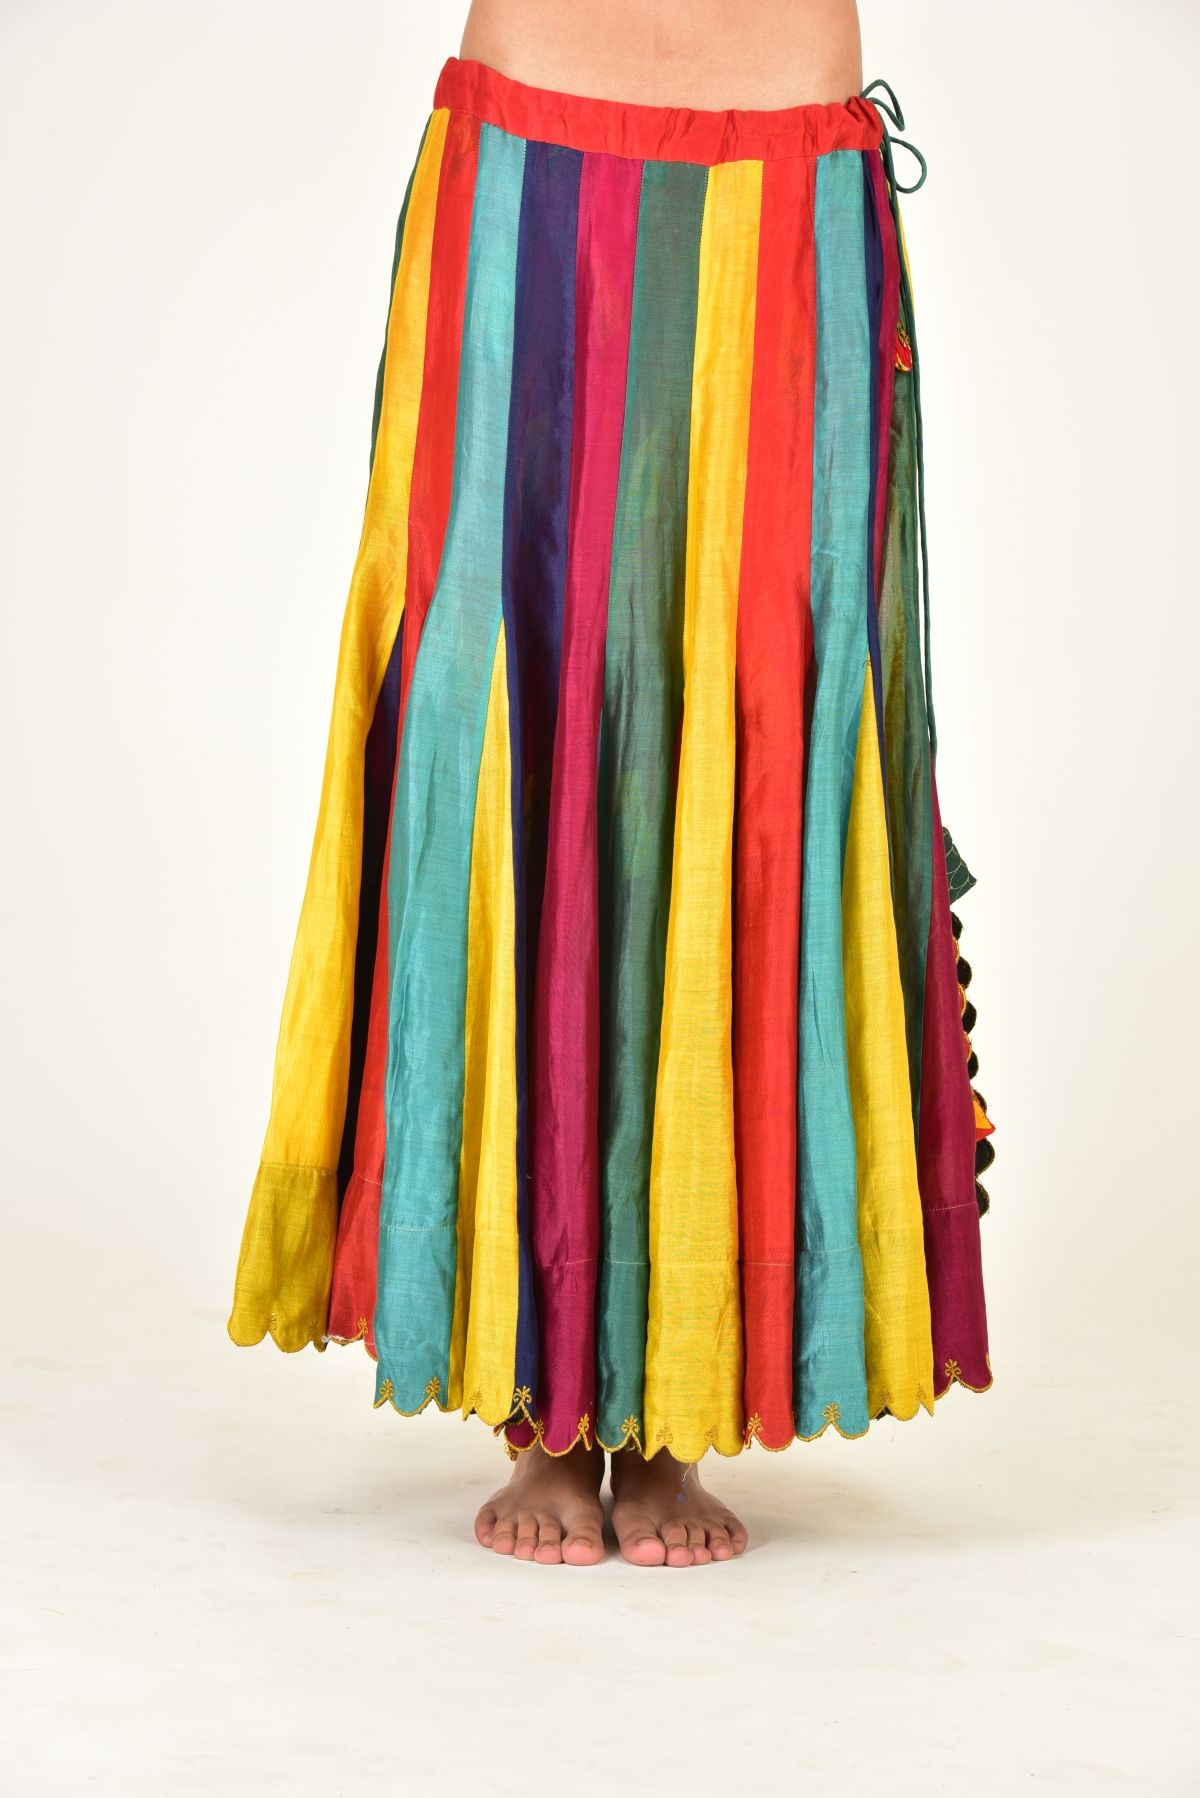 REVATI MULTICOLOR CHANDERI FLARED SKIRT